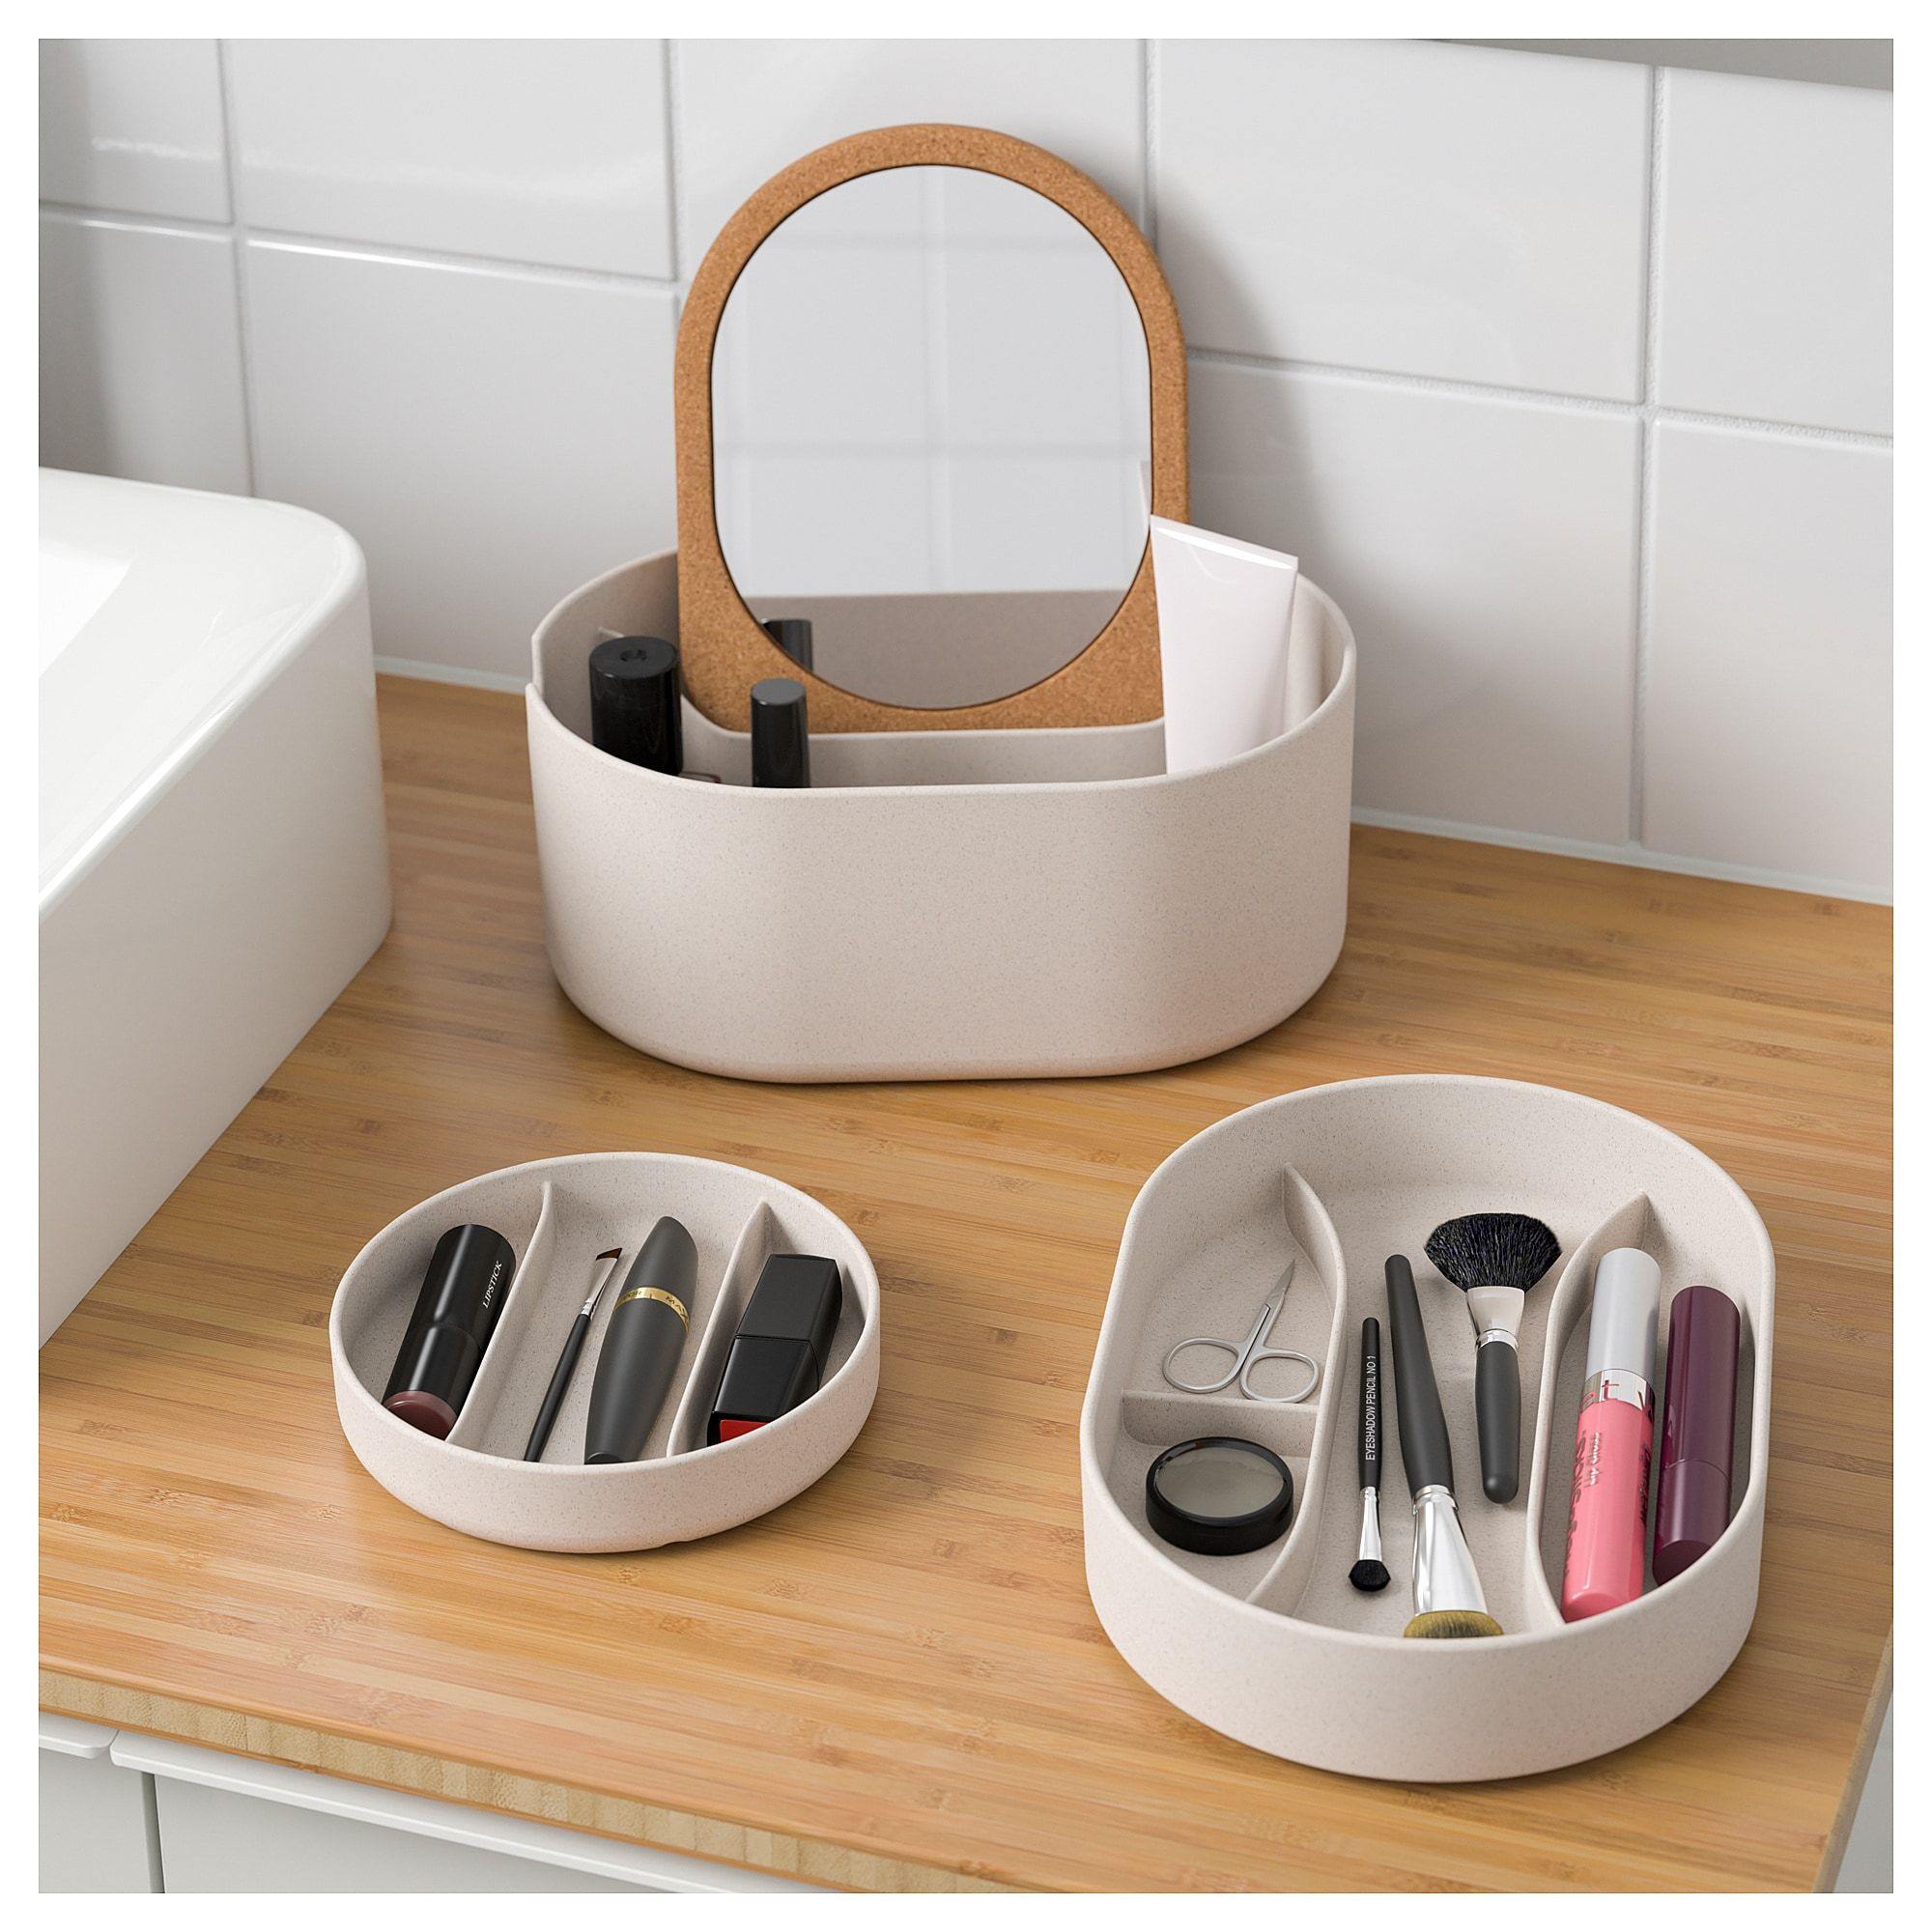 Our 5 Favorite Organizers From The 2020 Ikea Catalog Plastic Storage Bins Plastic Container Storage Storage Bins With Lids